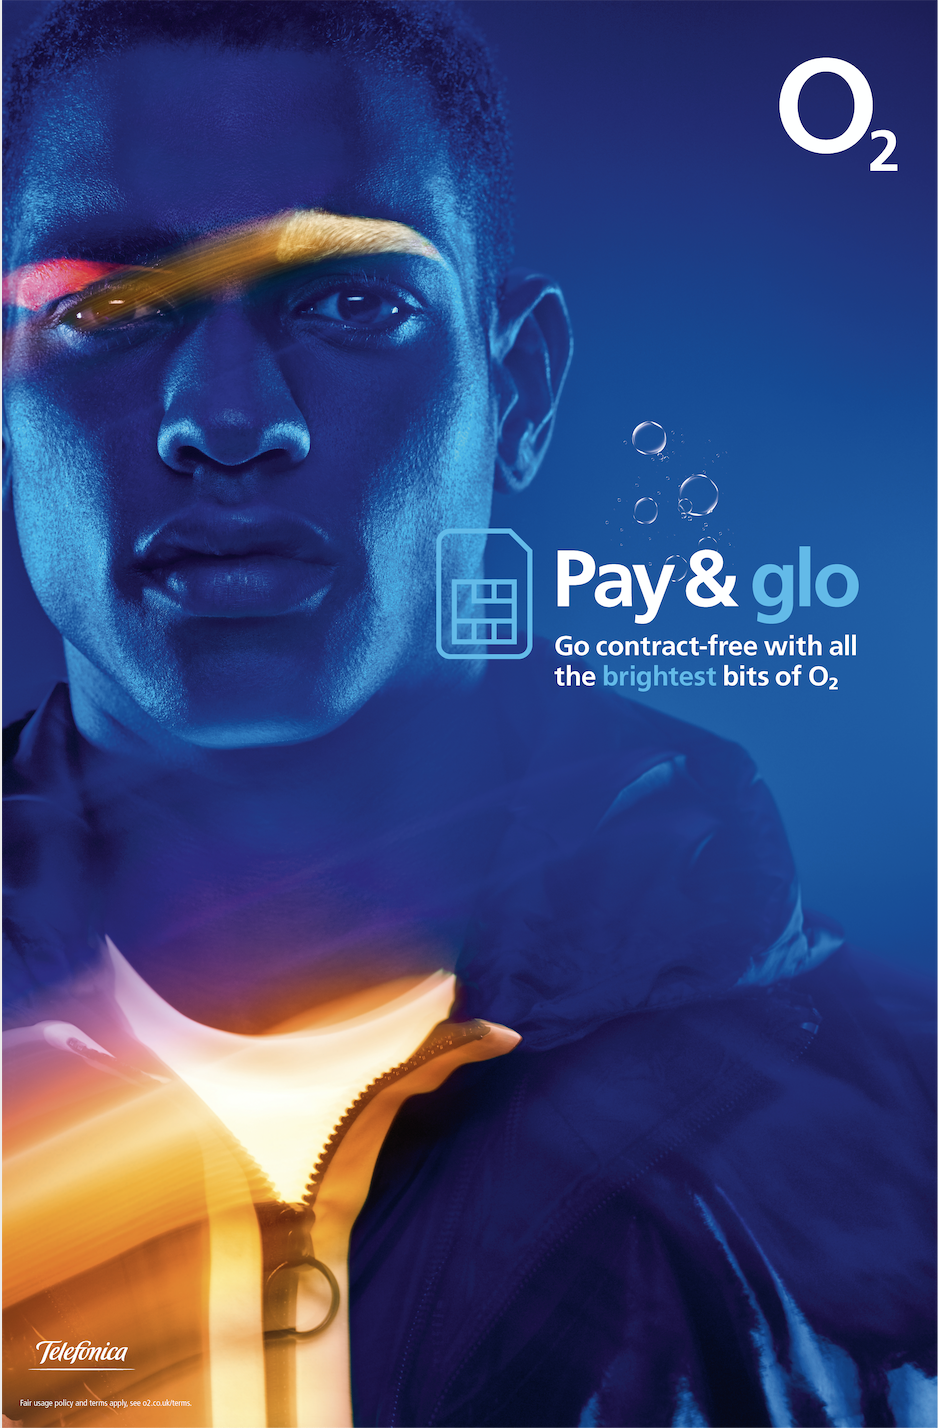 Pay & glo: ad highlights the perks of O2's pay and go service